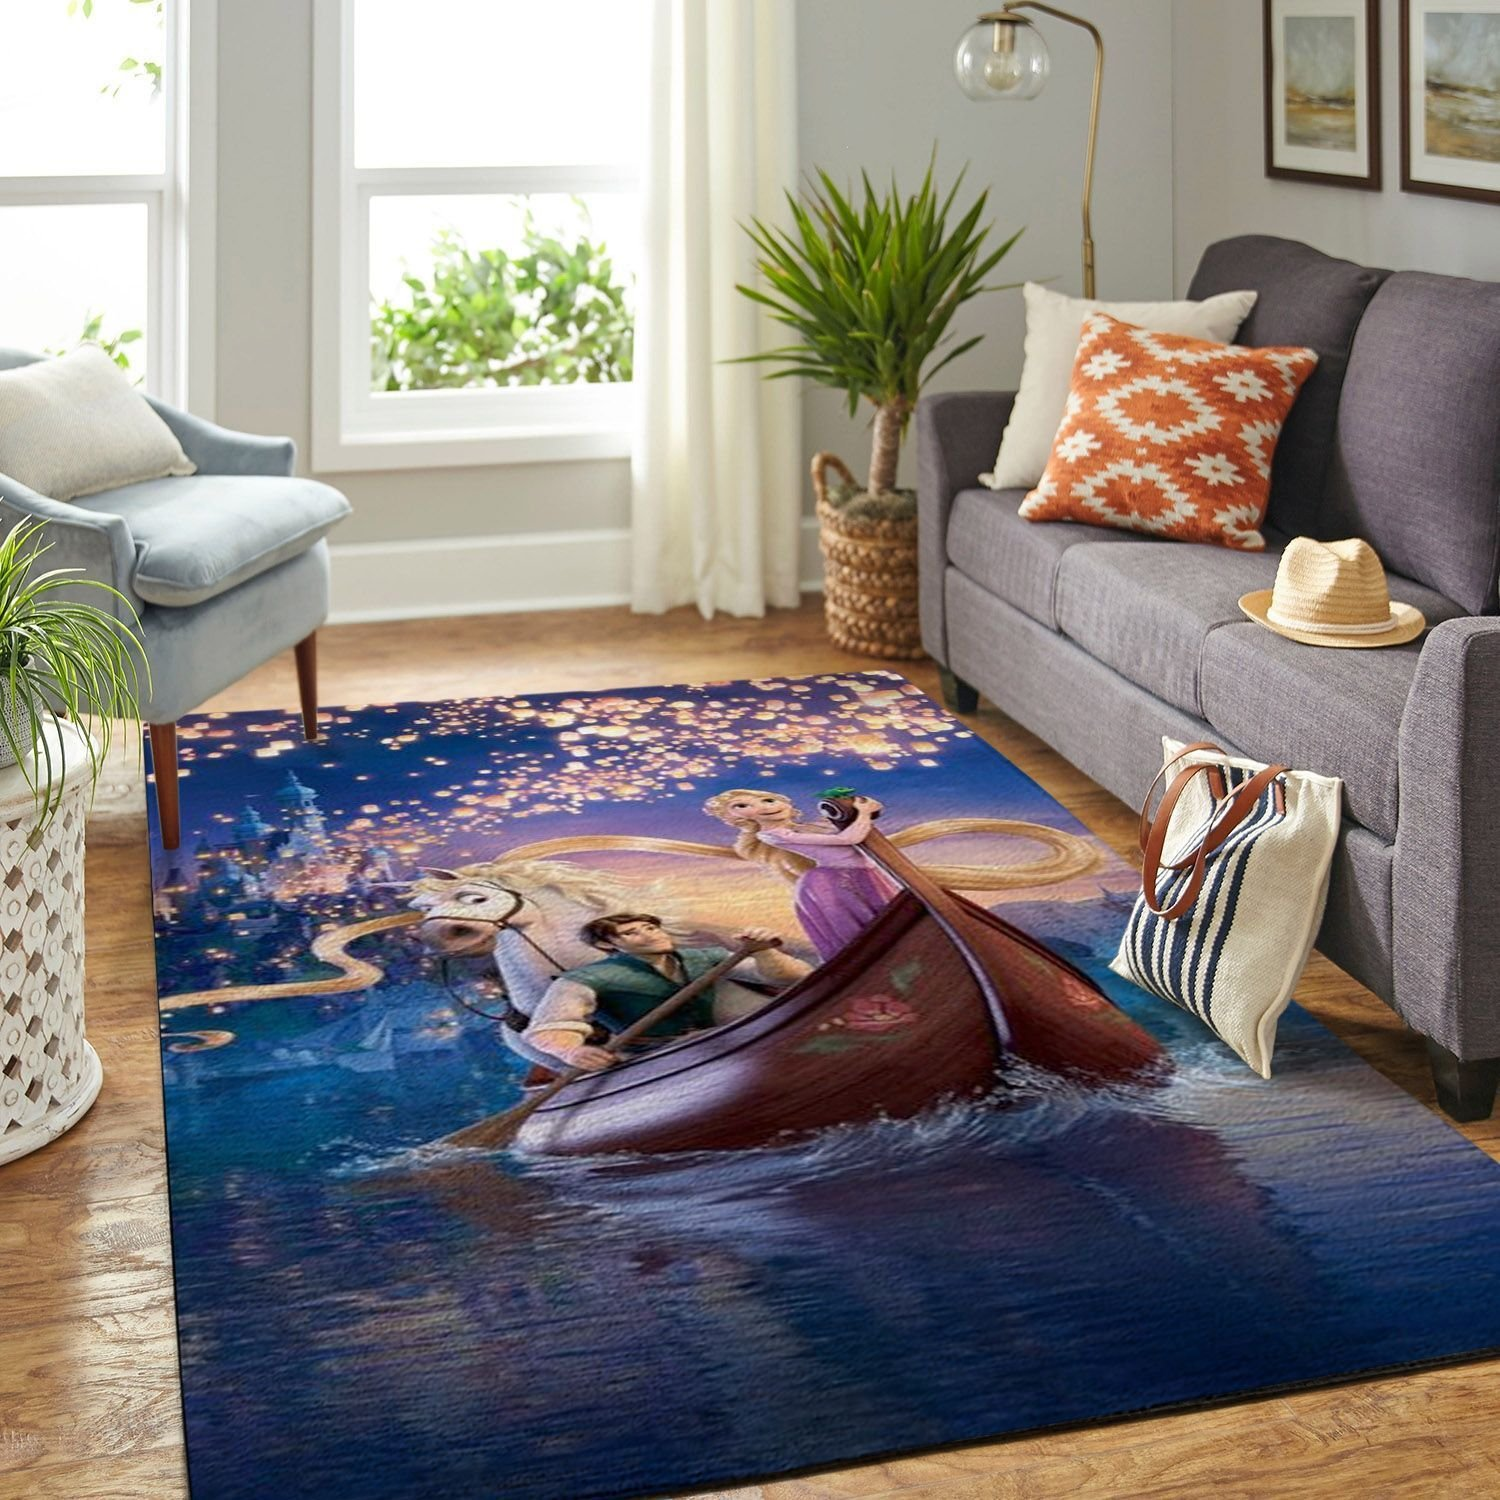 Amazon Tangled Disney Movie Living Room Area No6683 Rug